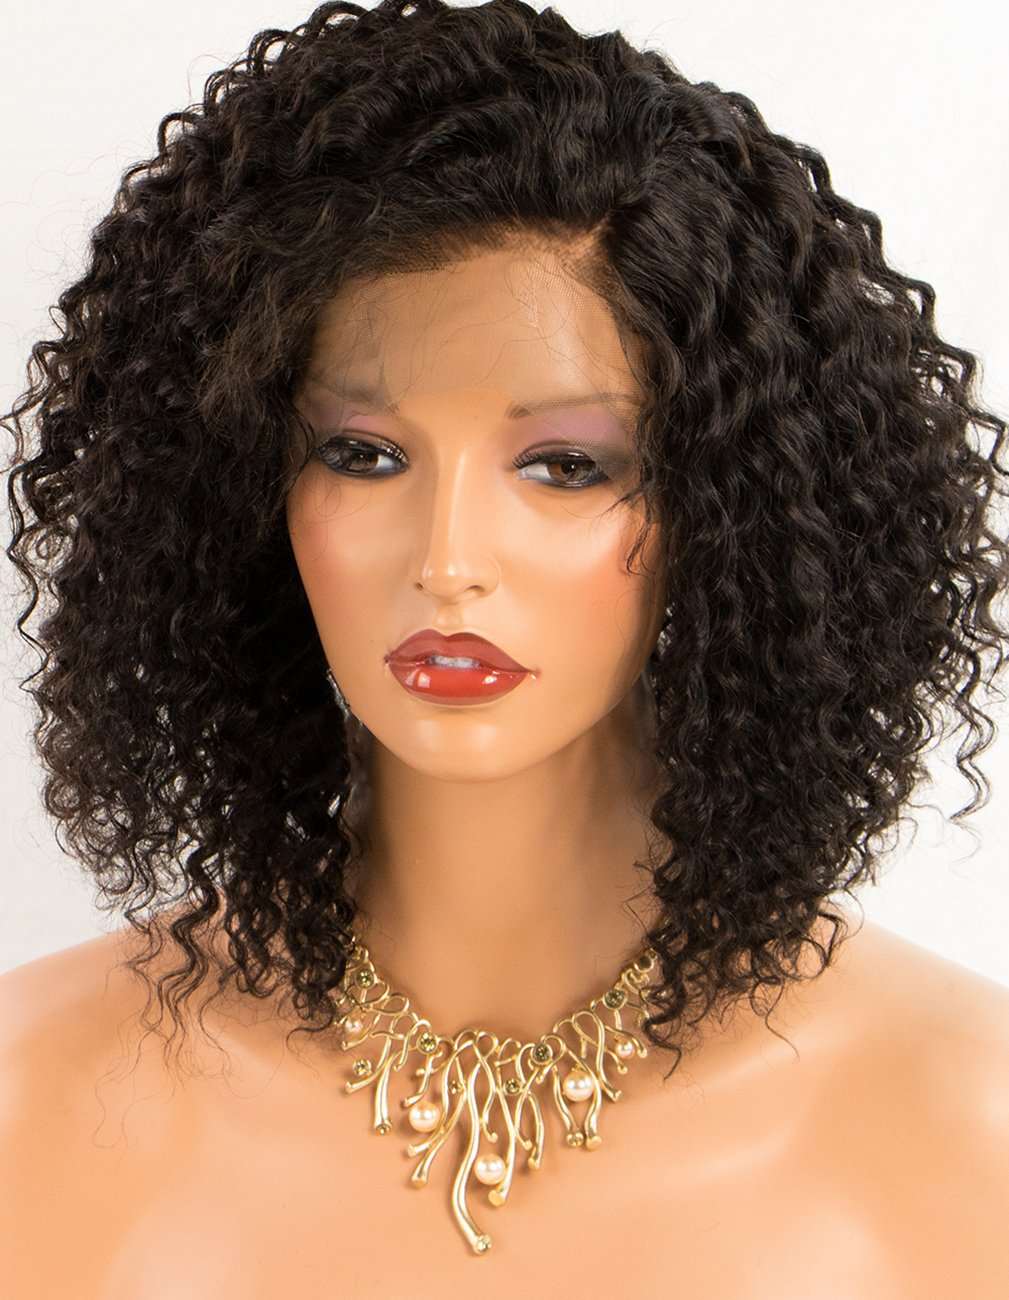 Persephone Kinky Curly Human Hair Lace Front Wigs Brazilian Remy Lace Wigs Human Hair for Black Women 150 Density 16 Inches Natural Color